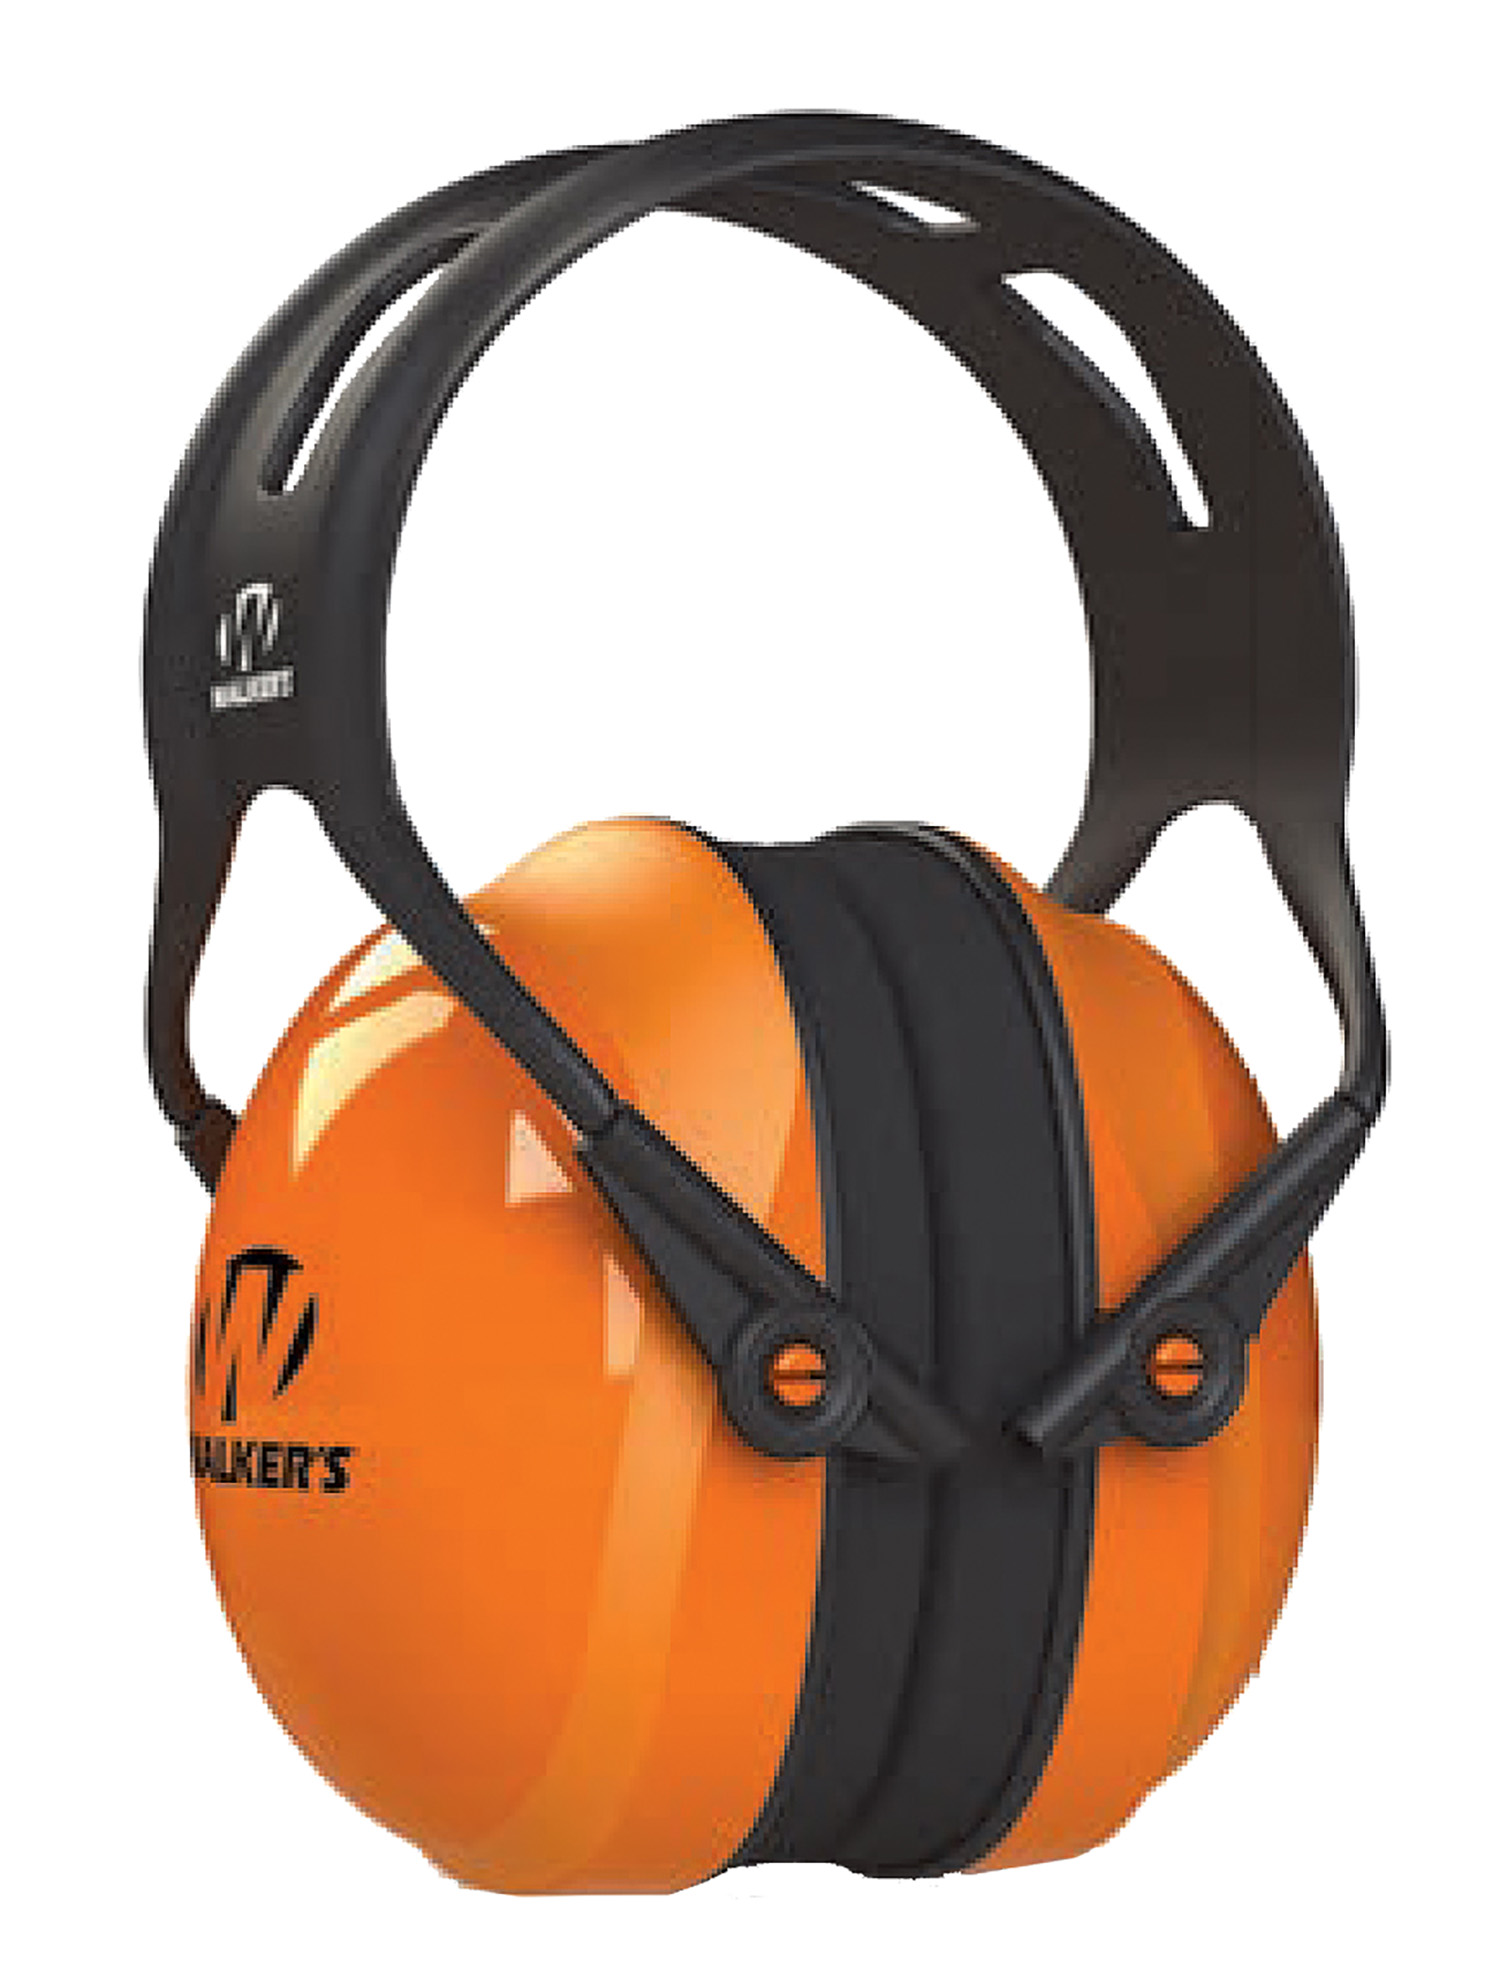 Walkers GWP-SF-PSM-MD Maxprotec  Polymer 27 dB Over the Head Orange Ear Cups with Black Headband Medium